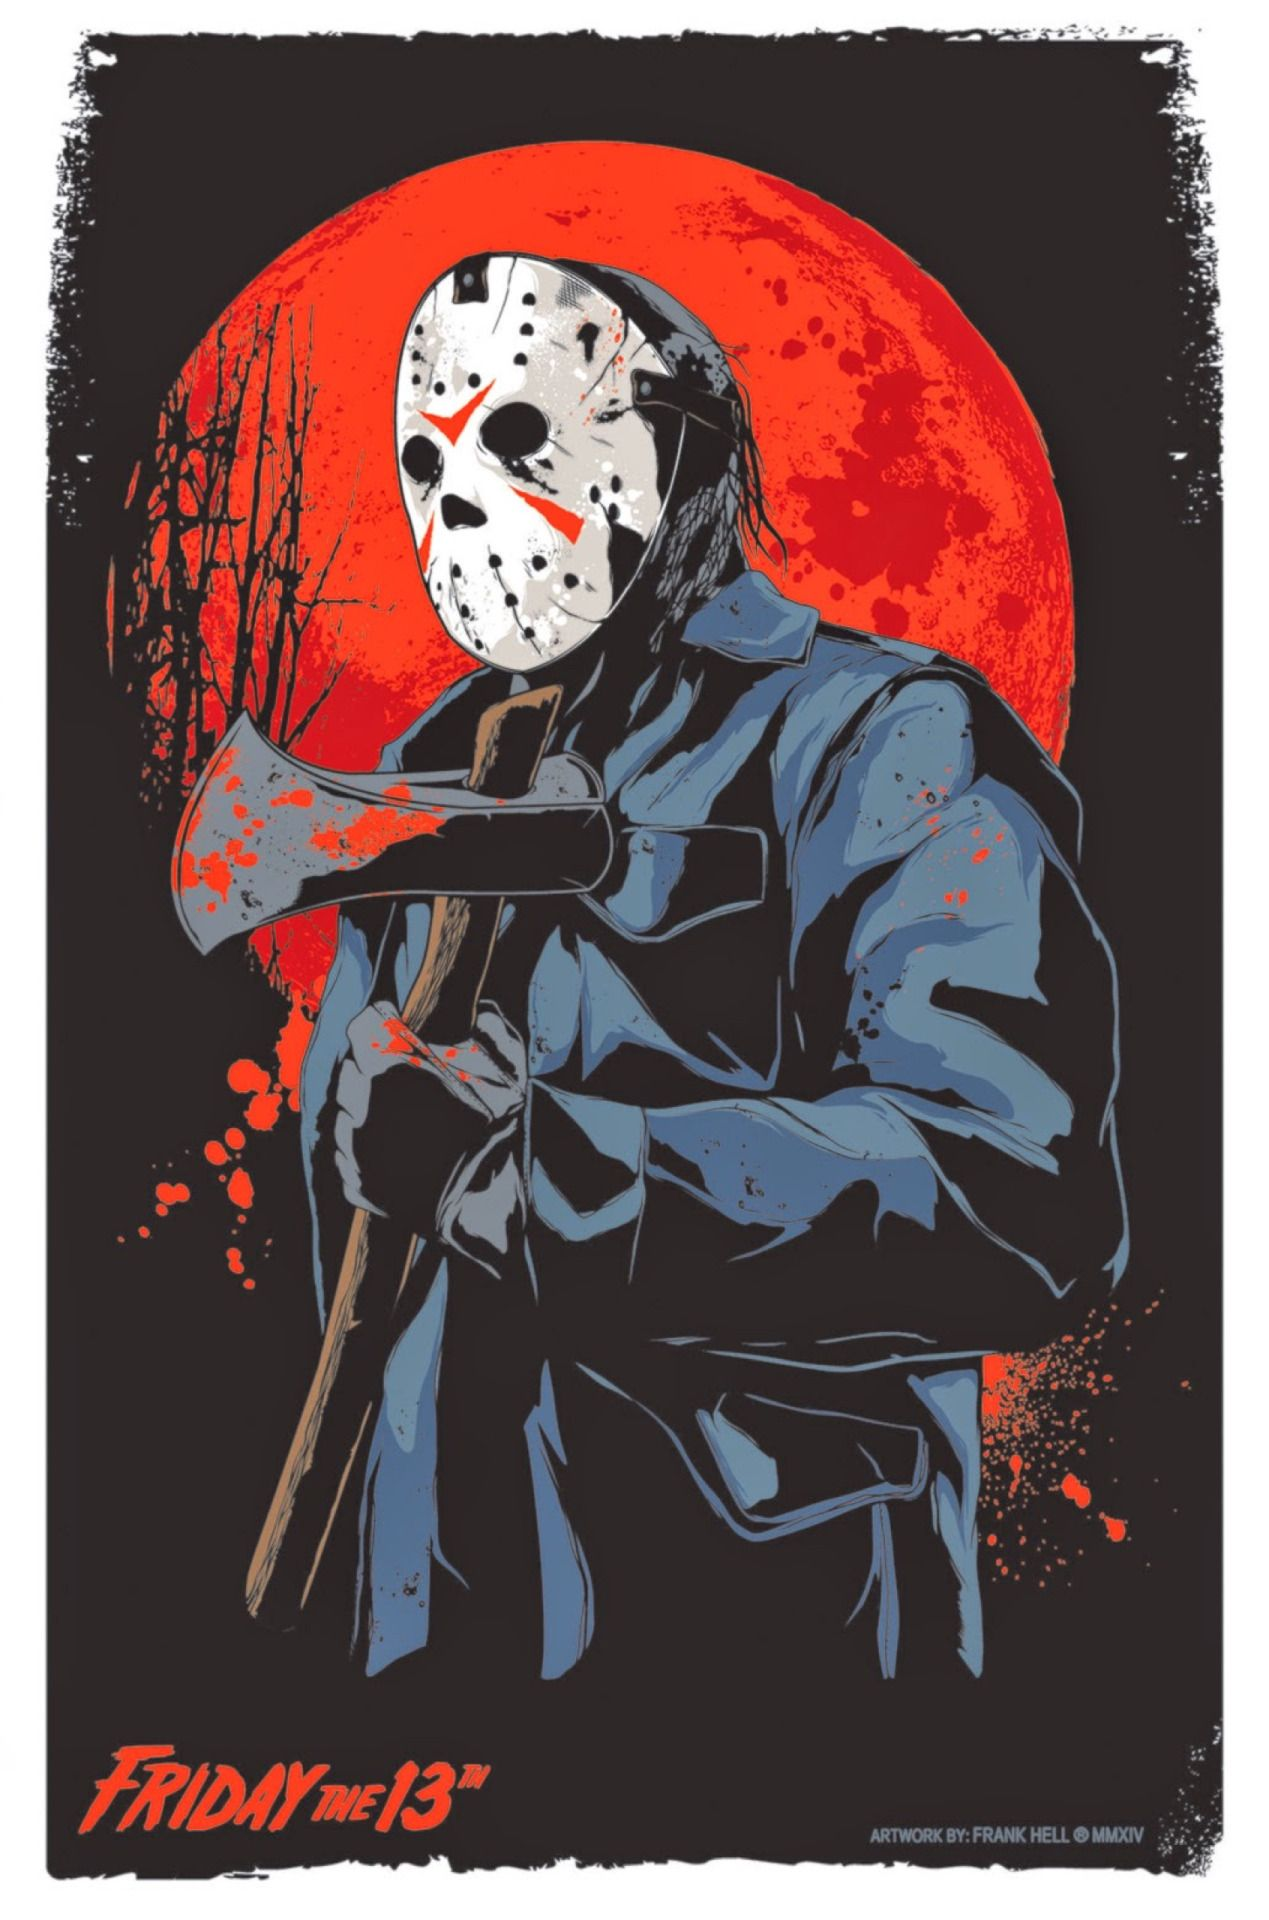 'Friday the 13th' by Frank Hell